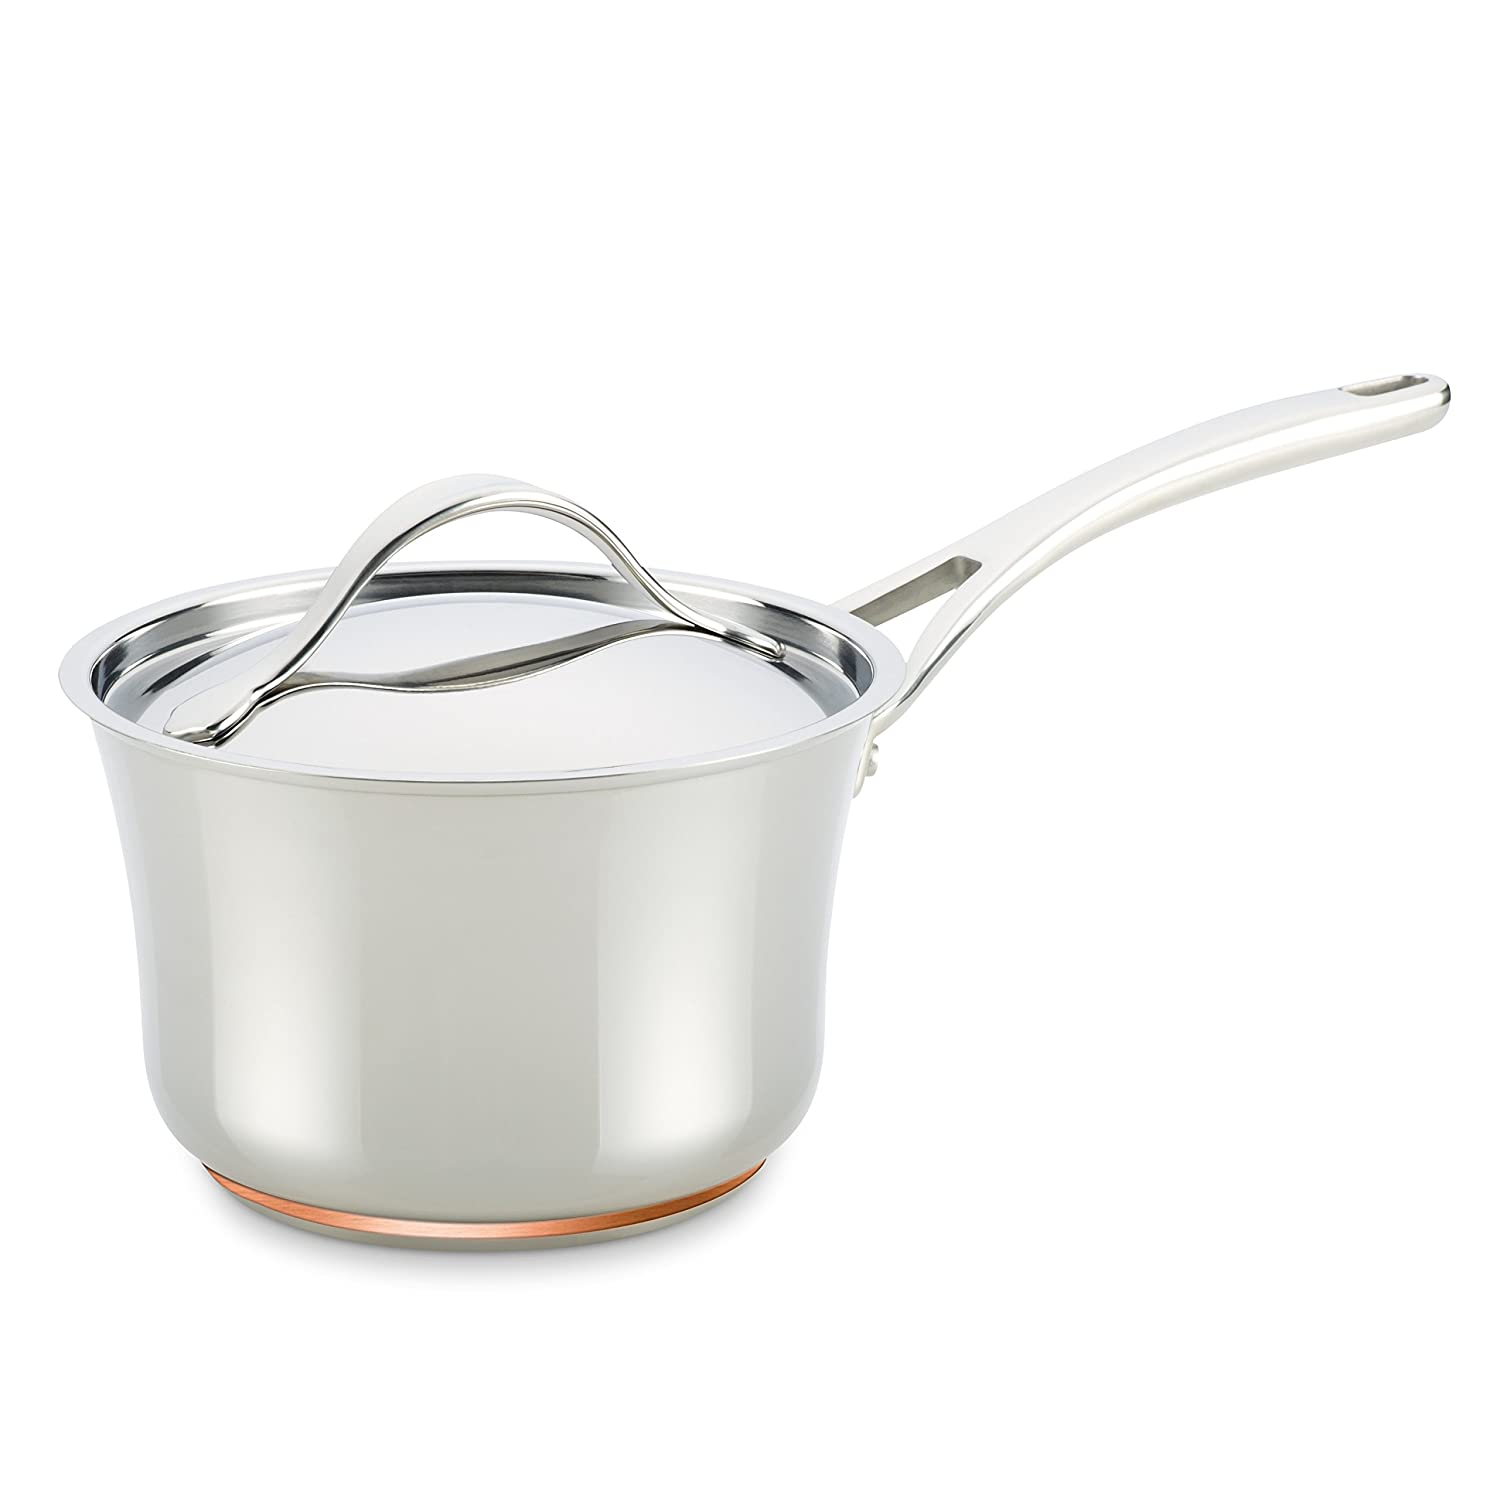 Anolon Nouvelle Copper Stainless Steel 3-1/2-Quart Covered Saucepan Meyer 77274